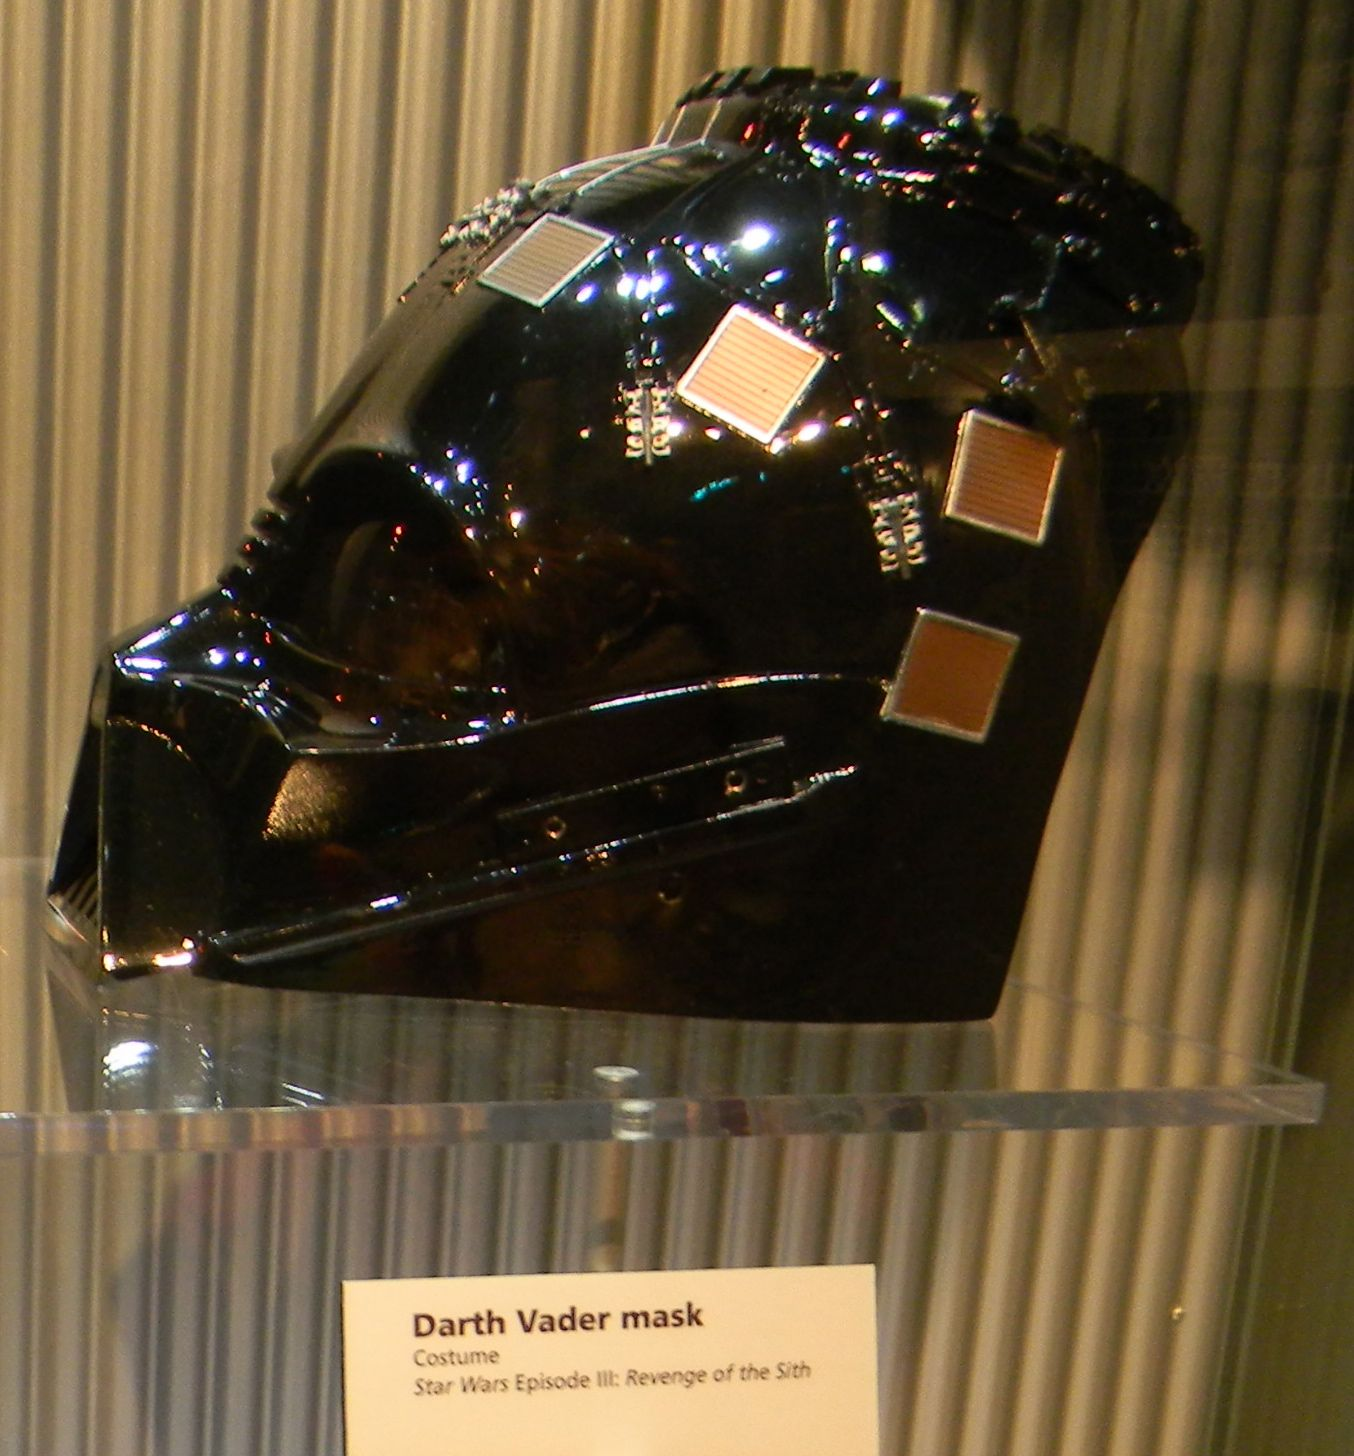 Darth Vader mask from ROTS